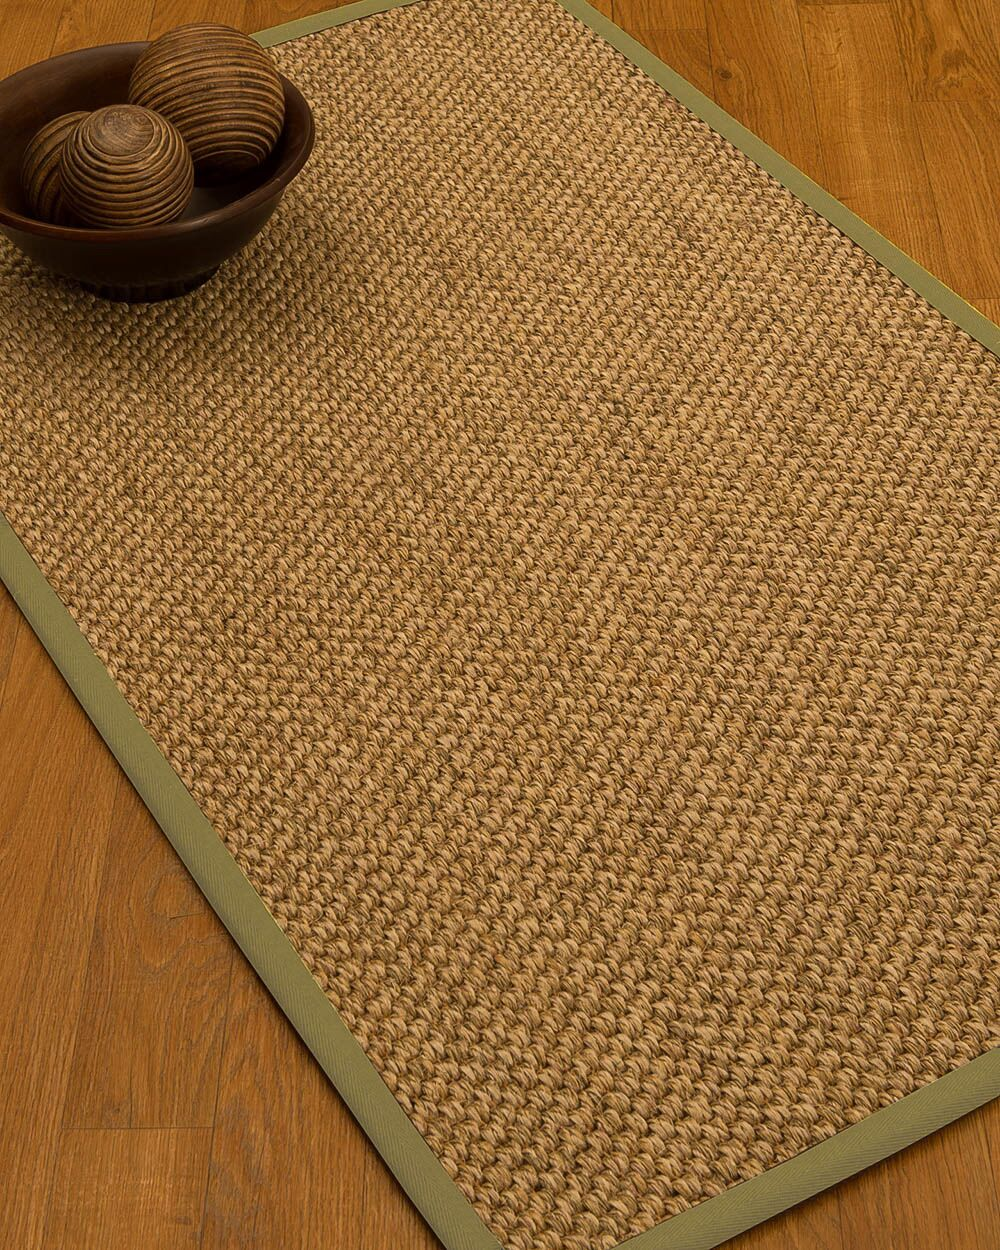 Heier Border Hand-Woven Brown/Khaki Area Rug Rug Size: Rectangle 12' x 15', Rug Pad Included: Yes